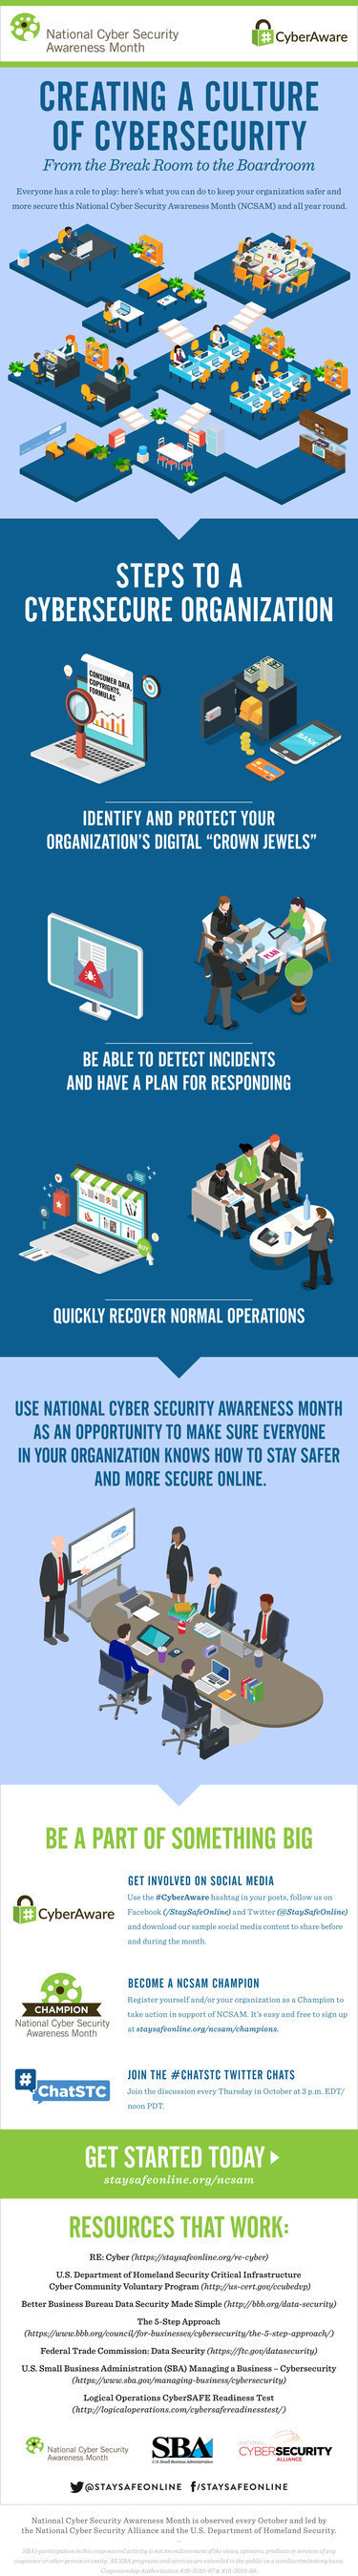 Businesses of All Sizes Urged to Create Culture of Cybersecurity and Protect Assets This National Cyber Security Awareness Month